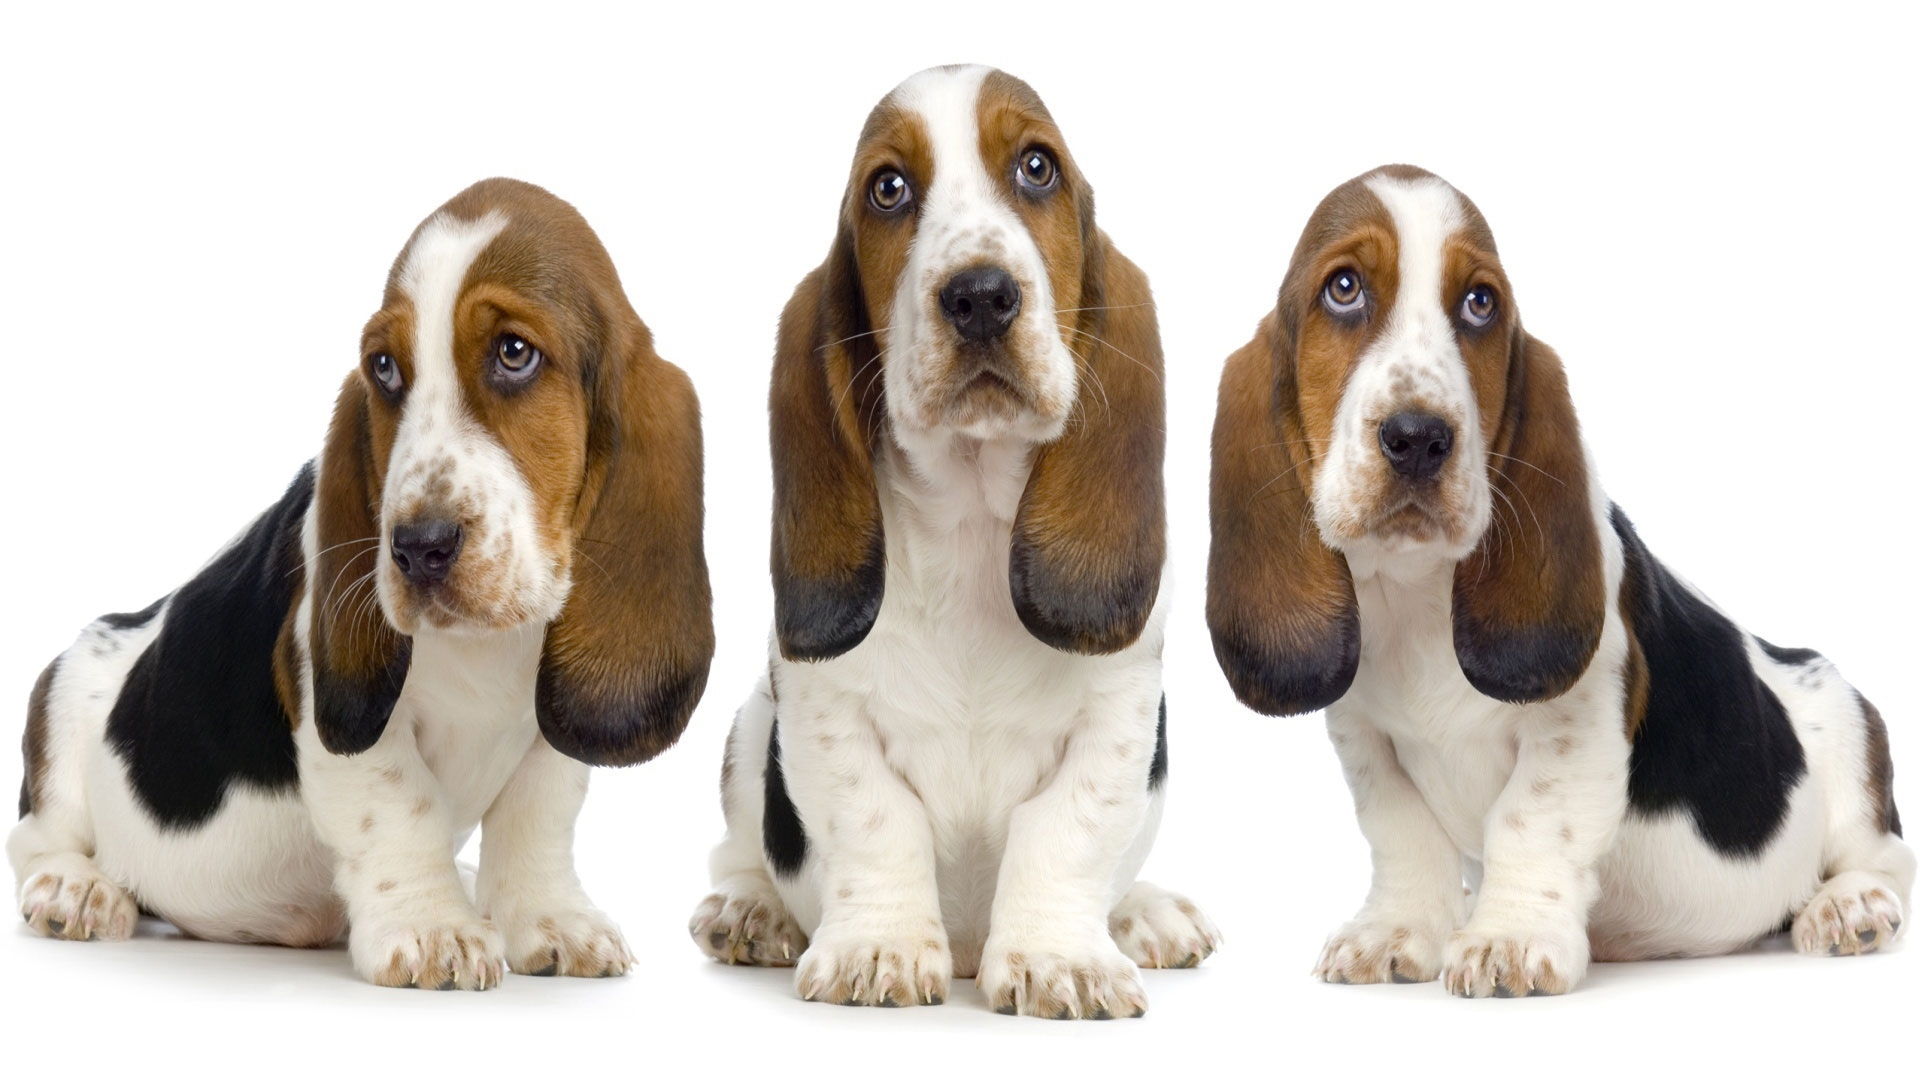 ... of top 10 Basset Hound Desktop Wallpapers. These wallpapers are high definition and available in wide range of sizes and resolutions.